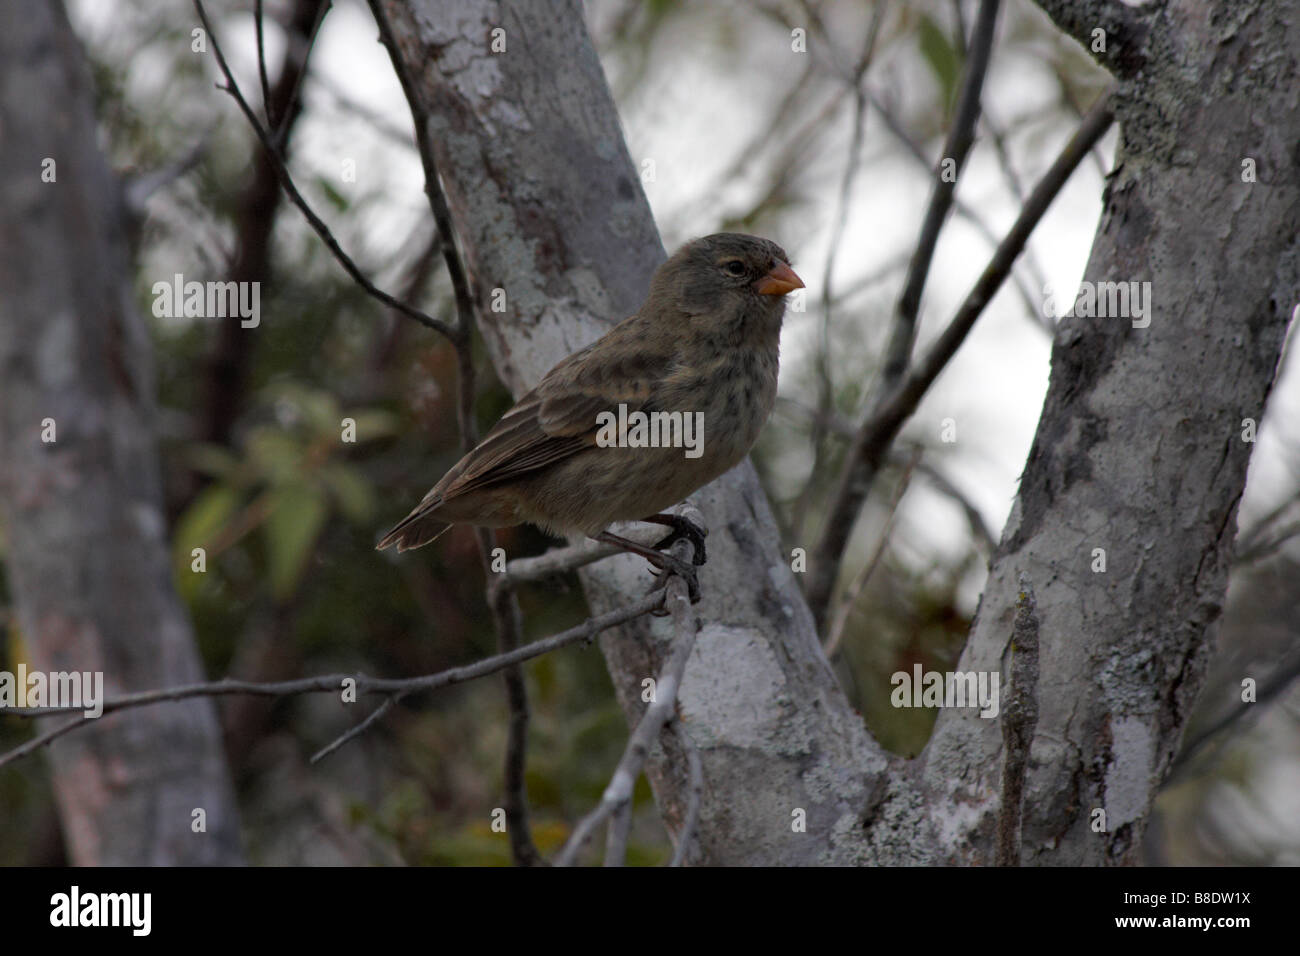 Darwin finch perched in tree at Puerto Ayora Highlands, Santa Cruz Island, Galapagos Islands, Ecuador in September - Stock Image